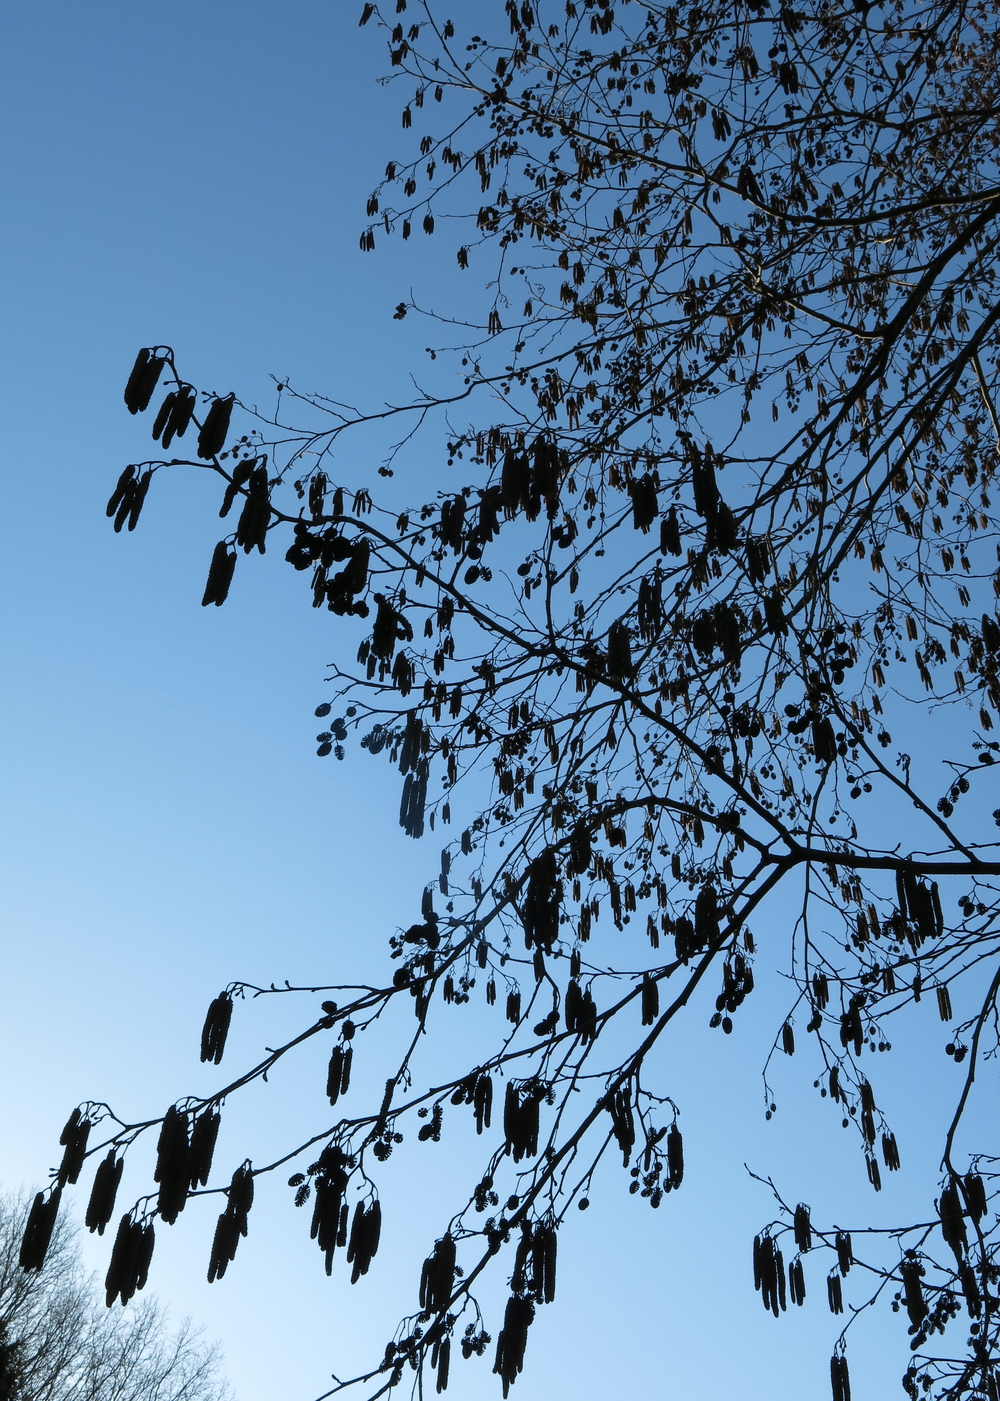 Late winter catkins of  Alnus glutinosa,  blowing in the wind.